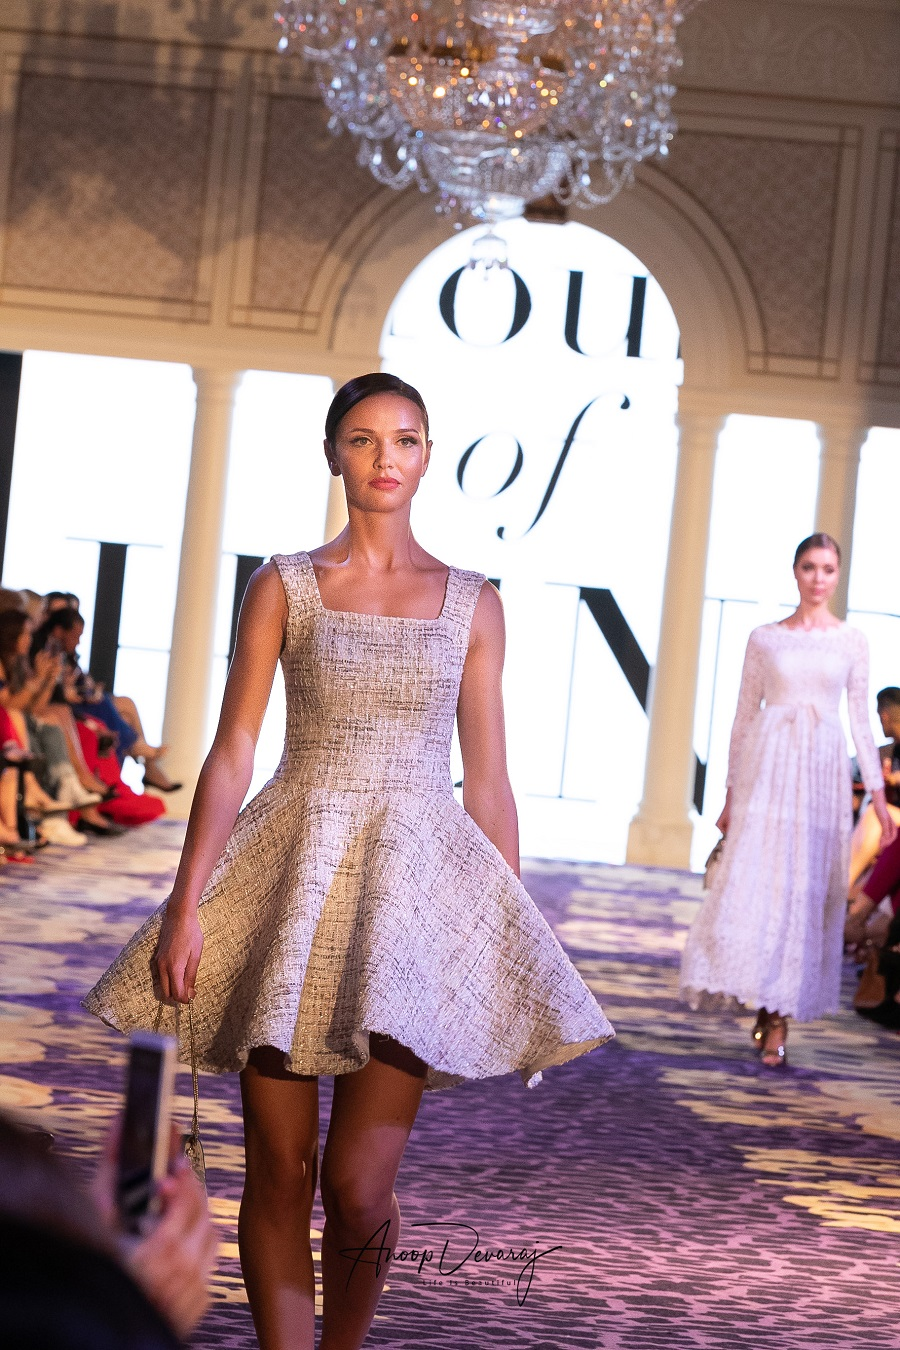 Fashion and Glamour at The Royal Gala